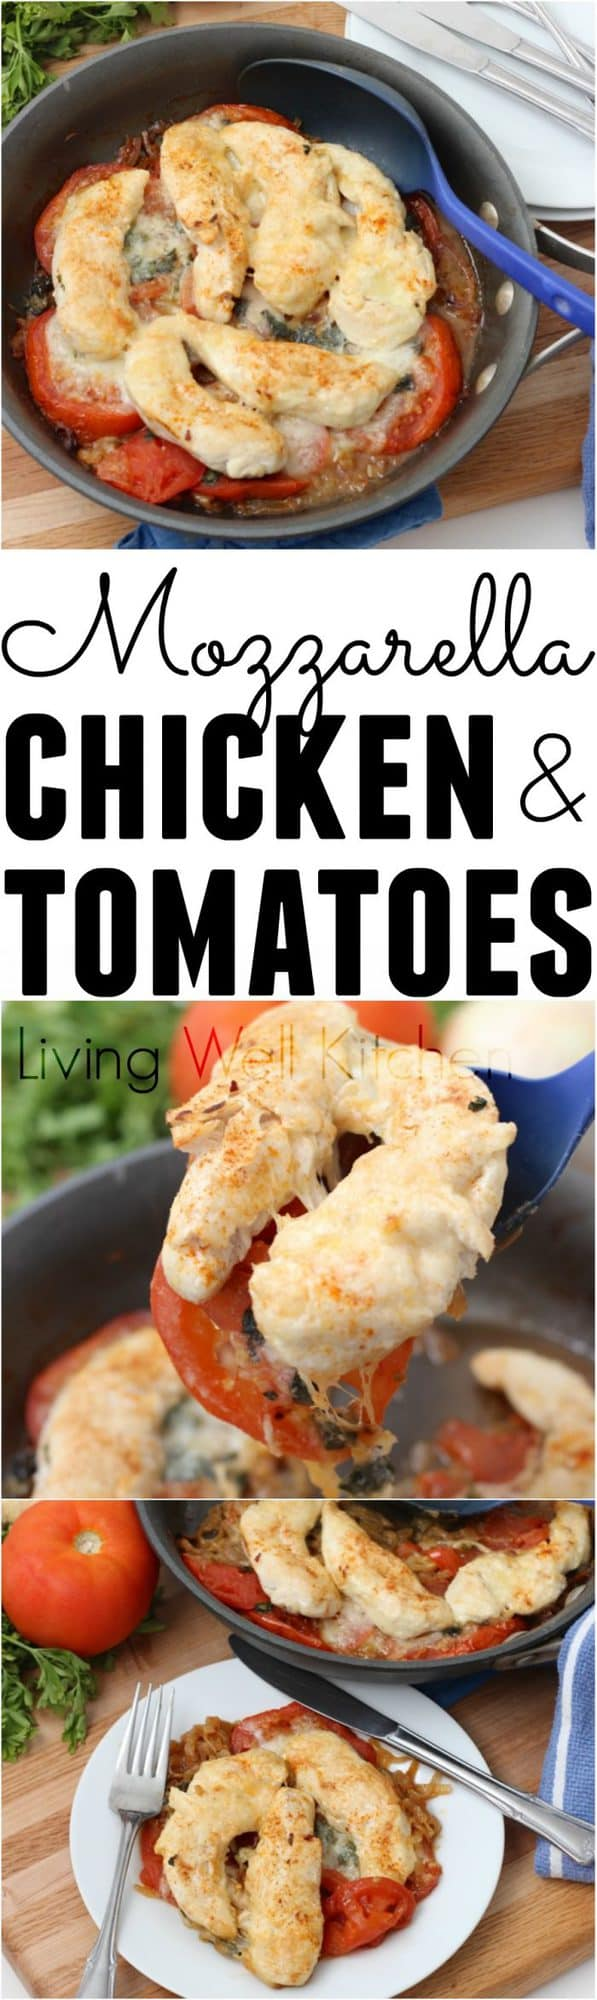 Mozzarella Chicken and Tomatoes is an easy and delicious dish full of veggies and lean protein, cooked in one pan, and ready in about 40 minutes. The perfect weeknight meal!